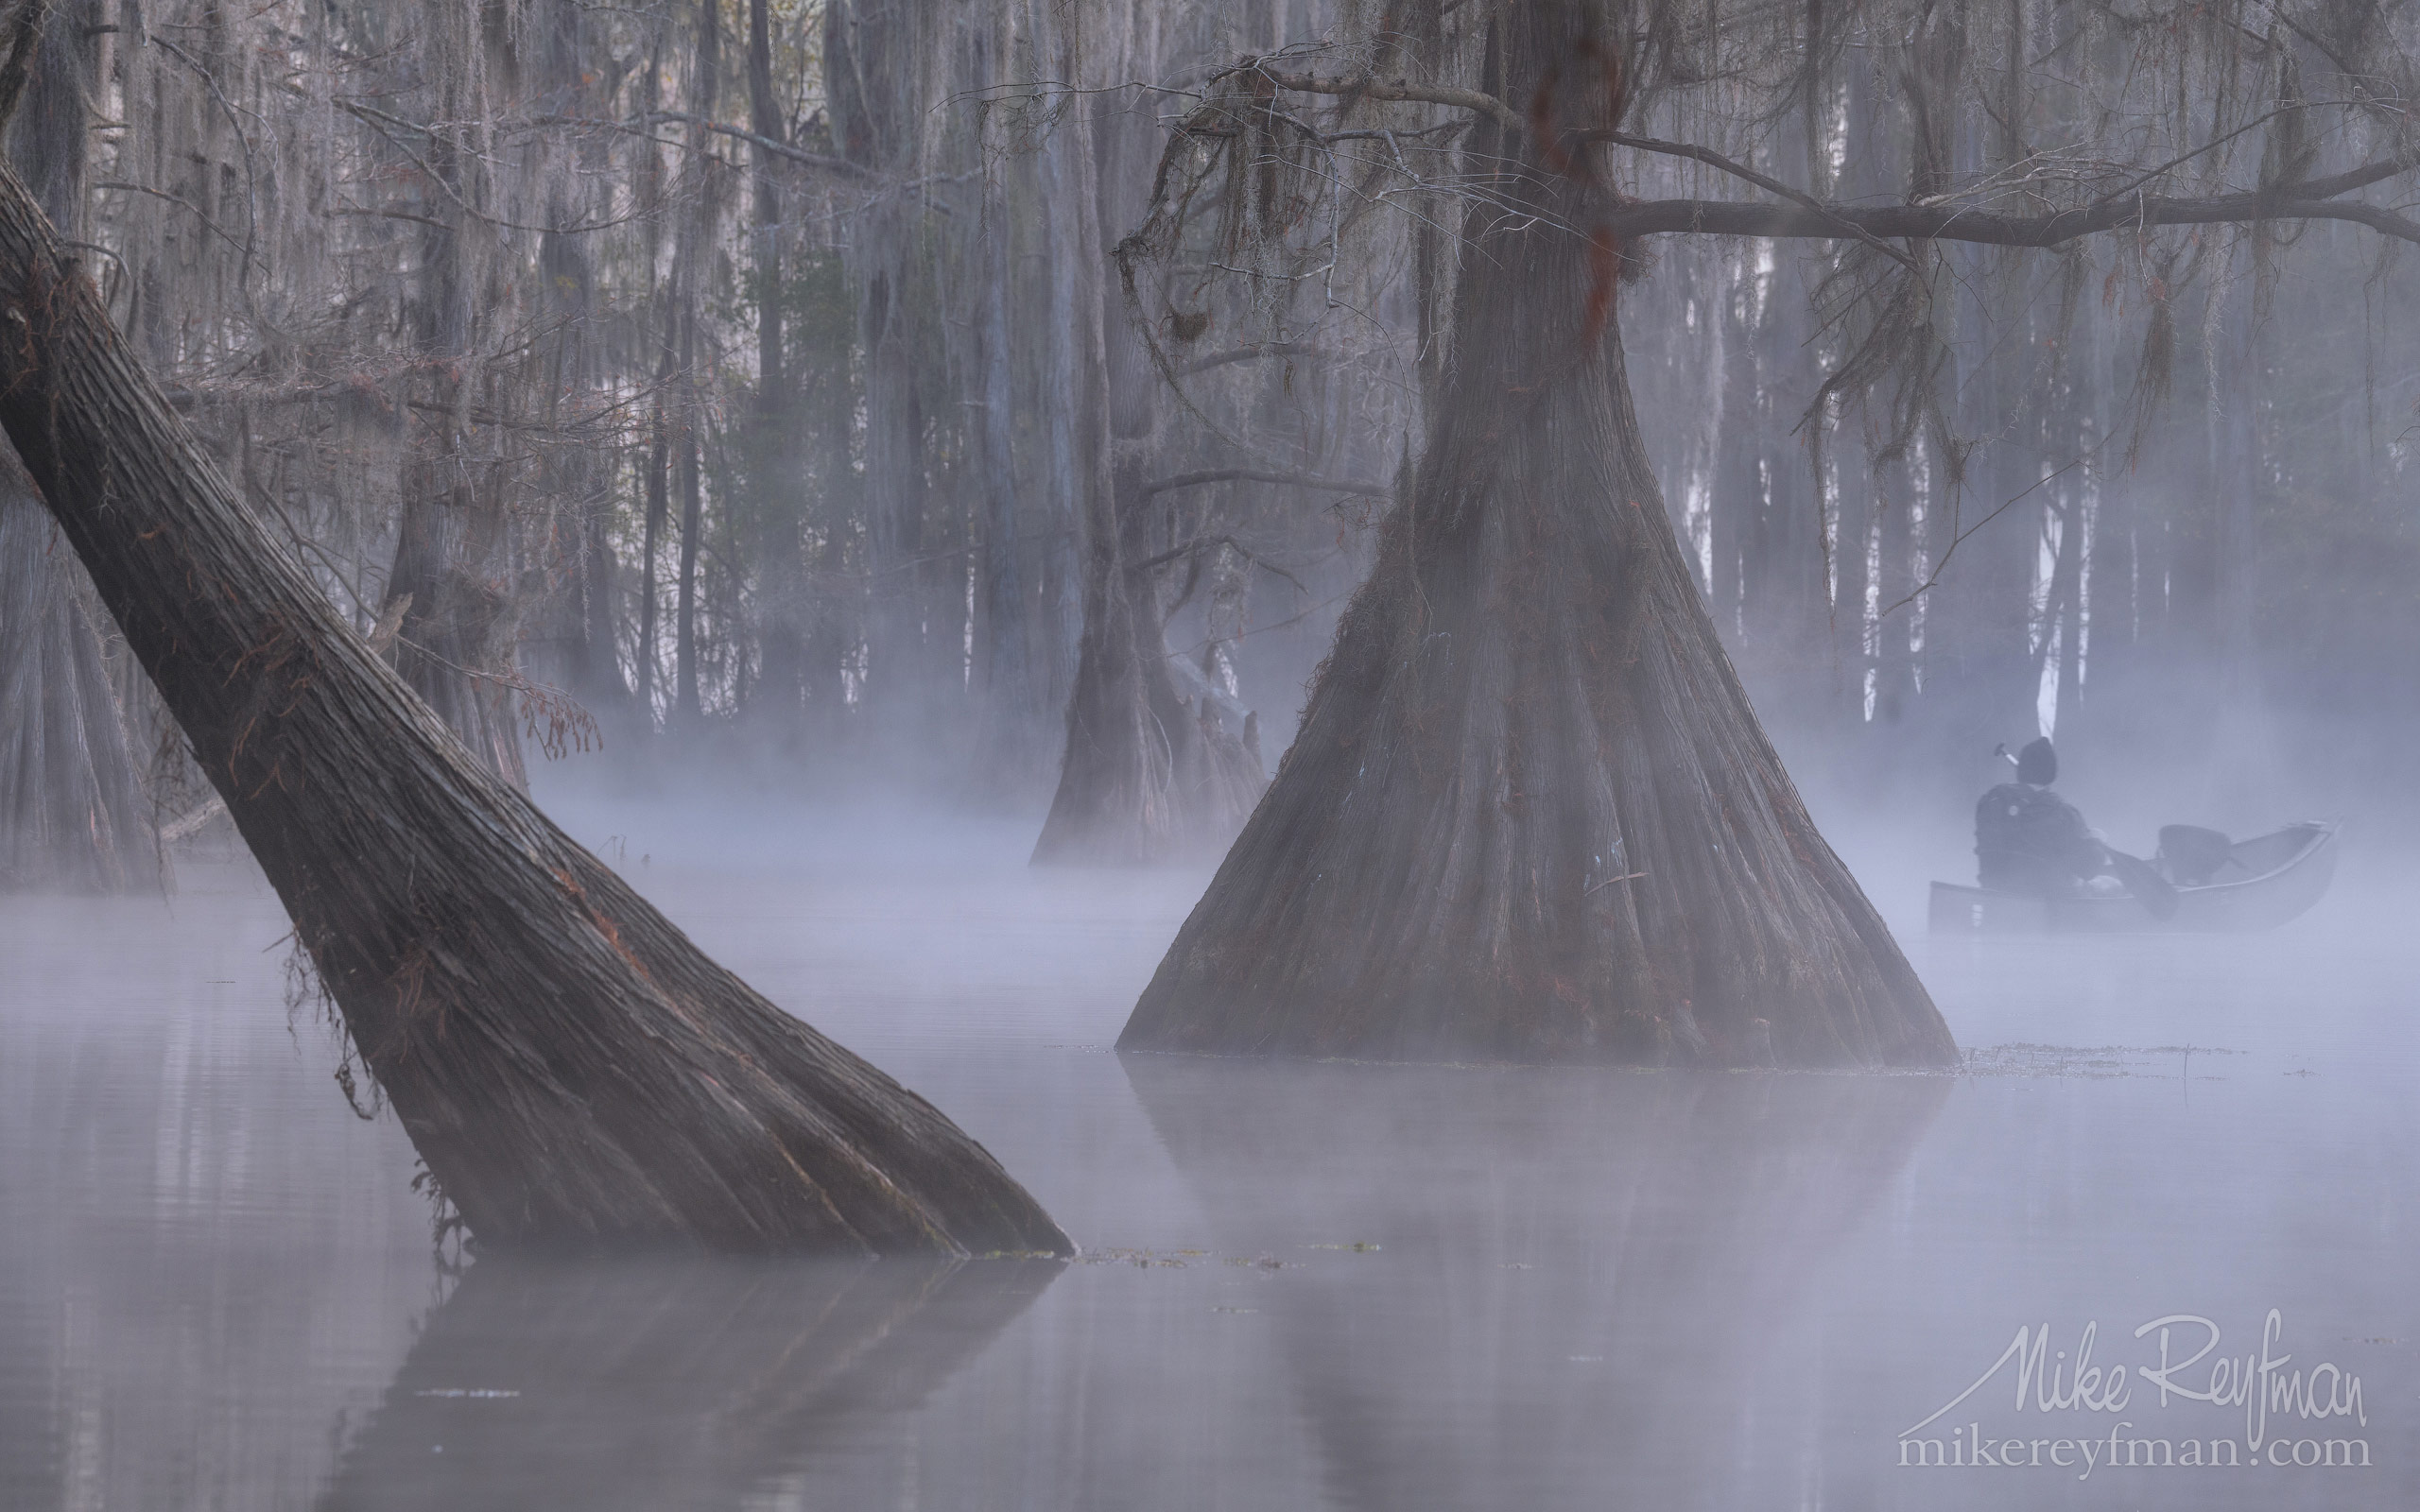 Kayaker paddling between Bald Cypress trees in the fog. Caddo Lake, Texas, US 016-LT1-50A3281.jpg - Bold Cypress and Tupelo Trees in the swamps of Atchafalaya River Basin. Caddo, Martin and Fousse Lakes. Texas/Louisiana, USA. - Mike Reyfman Photography